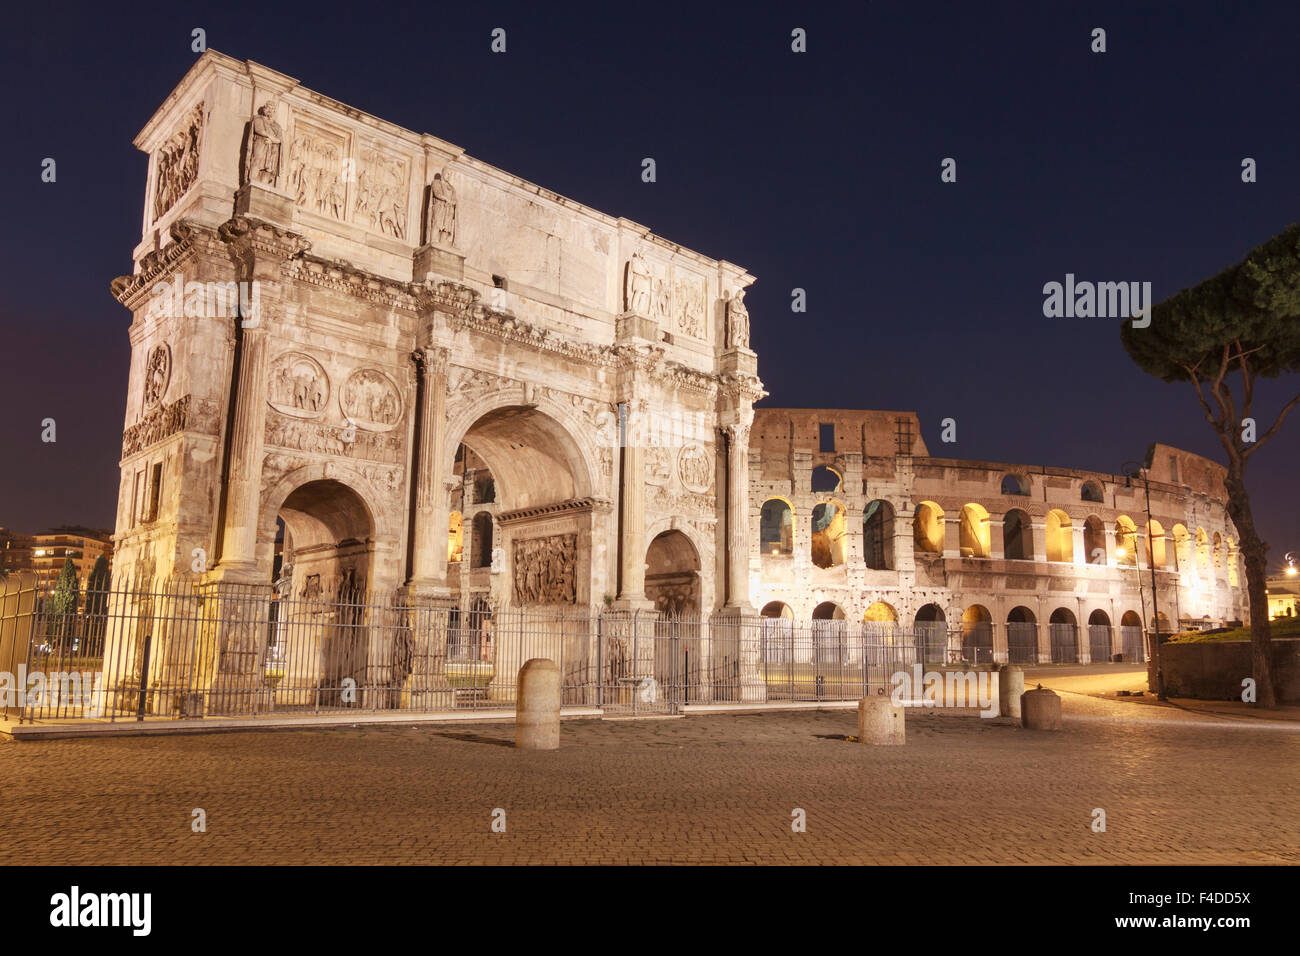 Arch of Constantine and Coliseum illuminated by night. Rome, Italy - Stock Image